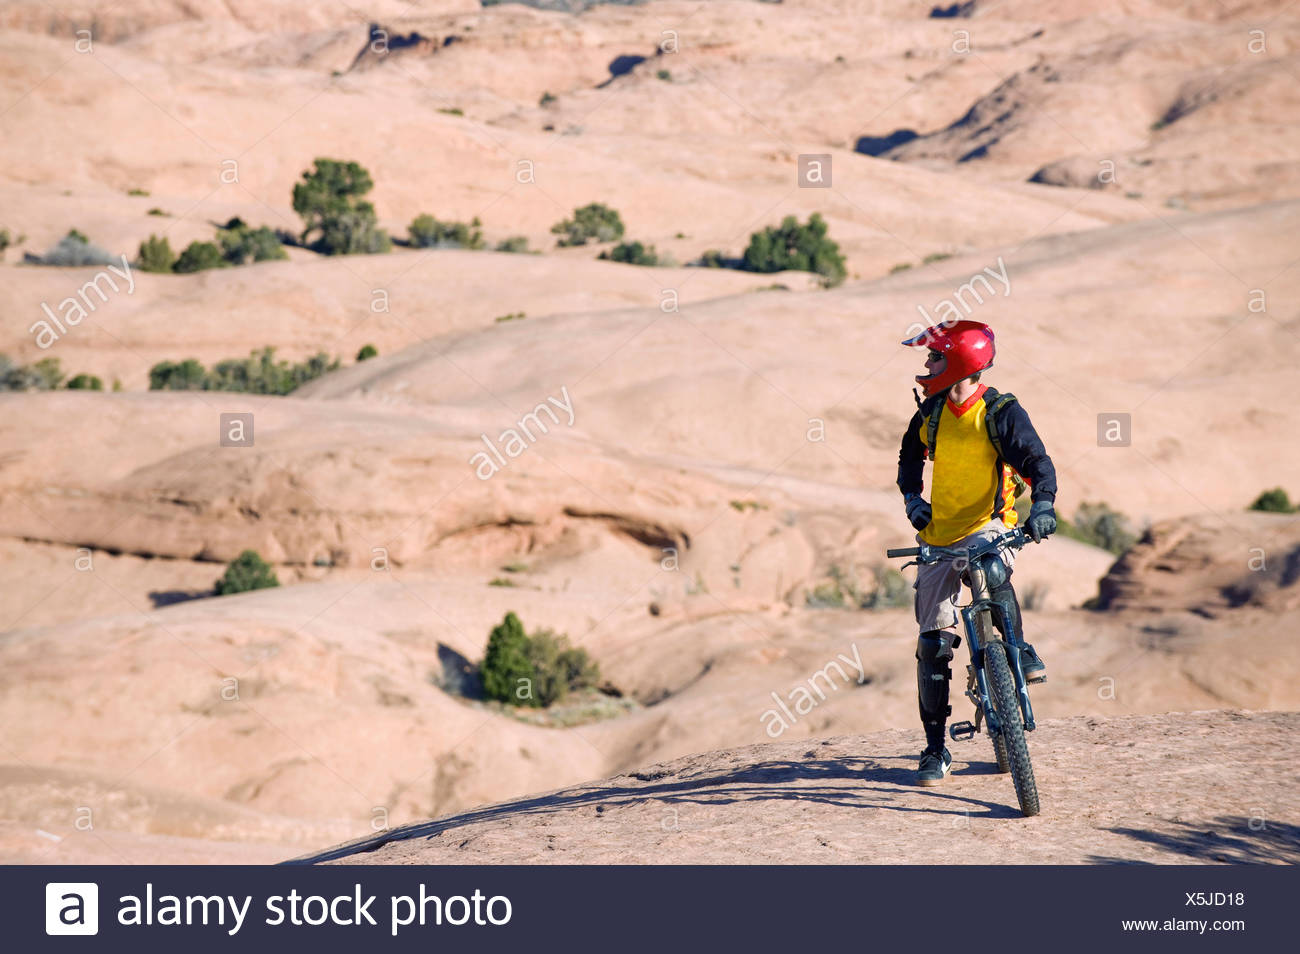 A mountain biker rests during a ride on the Slickrock Trail, Moab, UT. Stock Photo